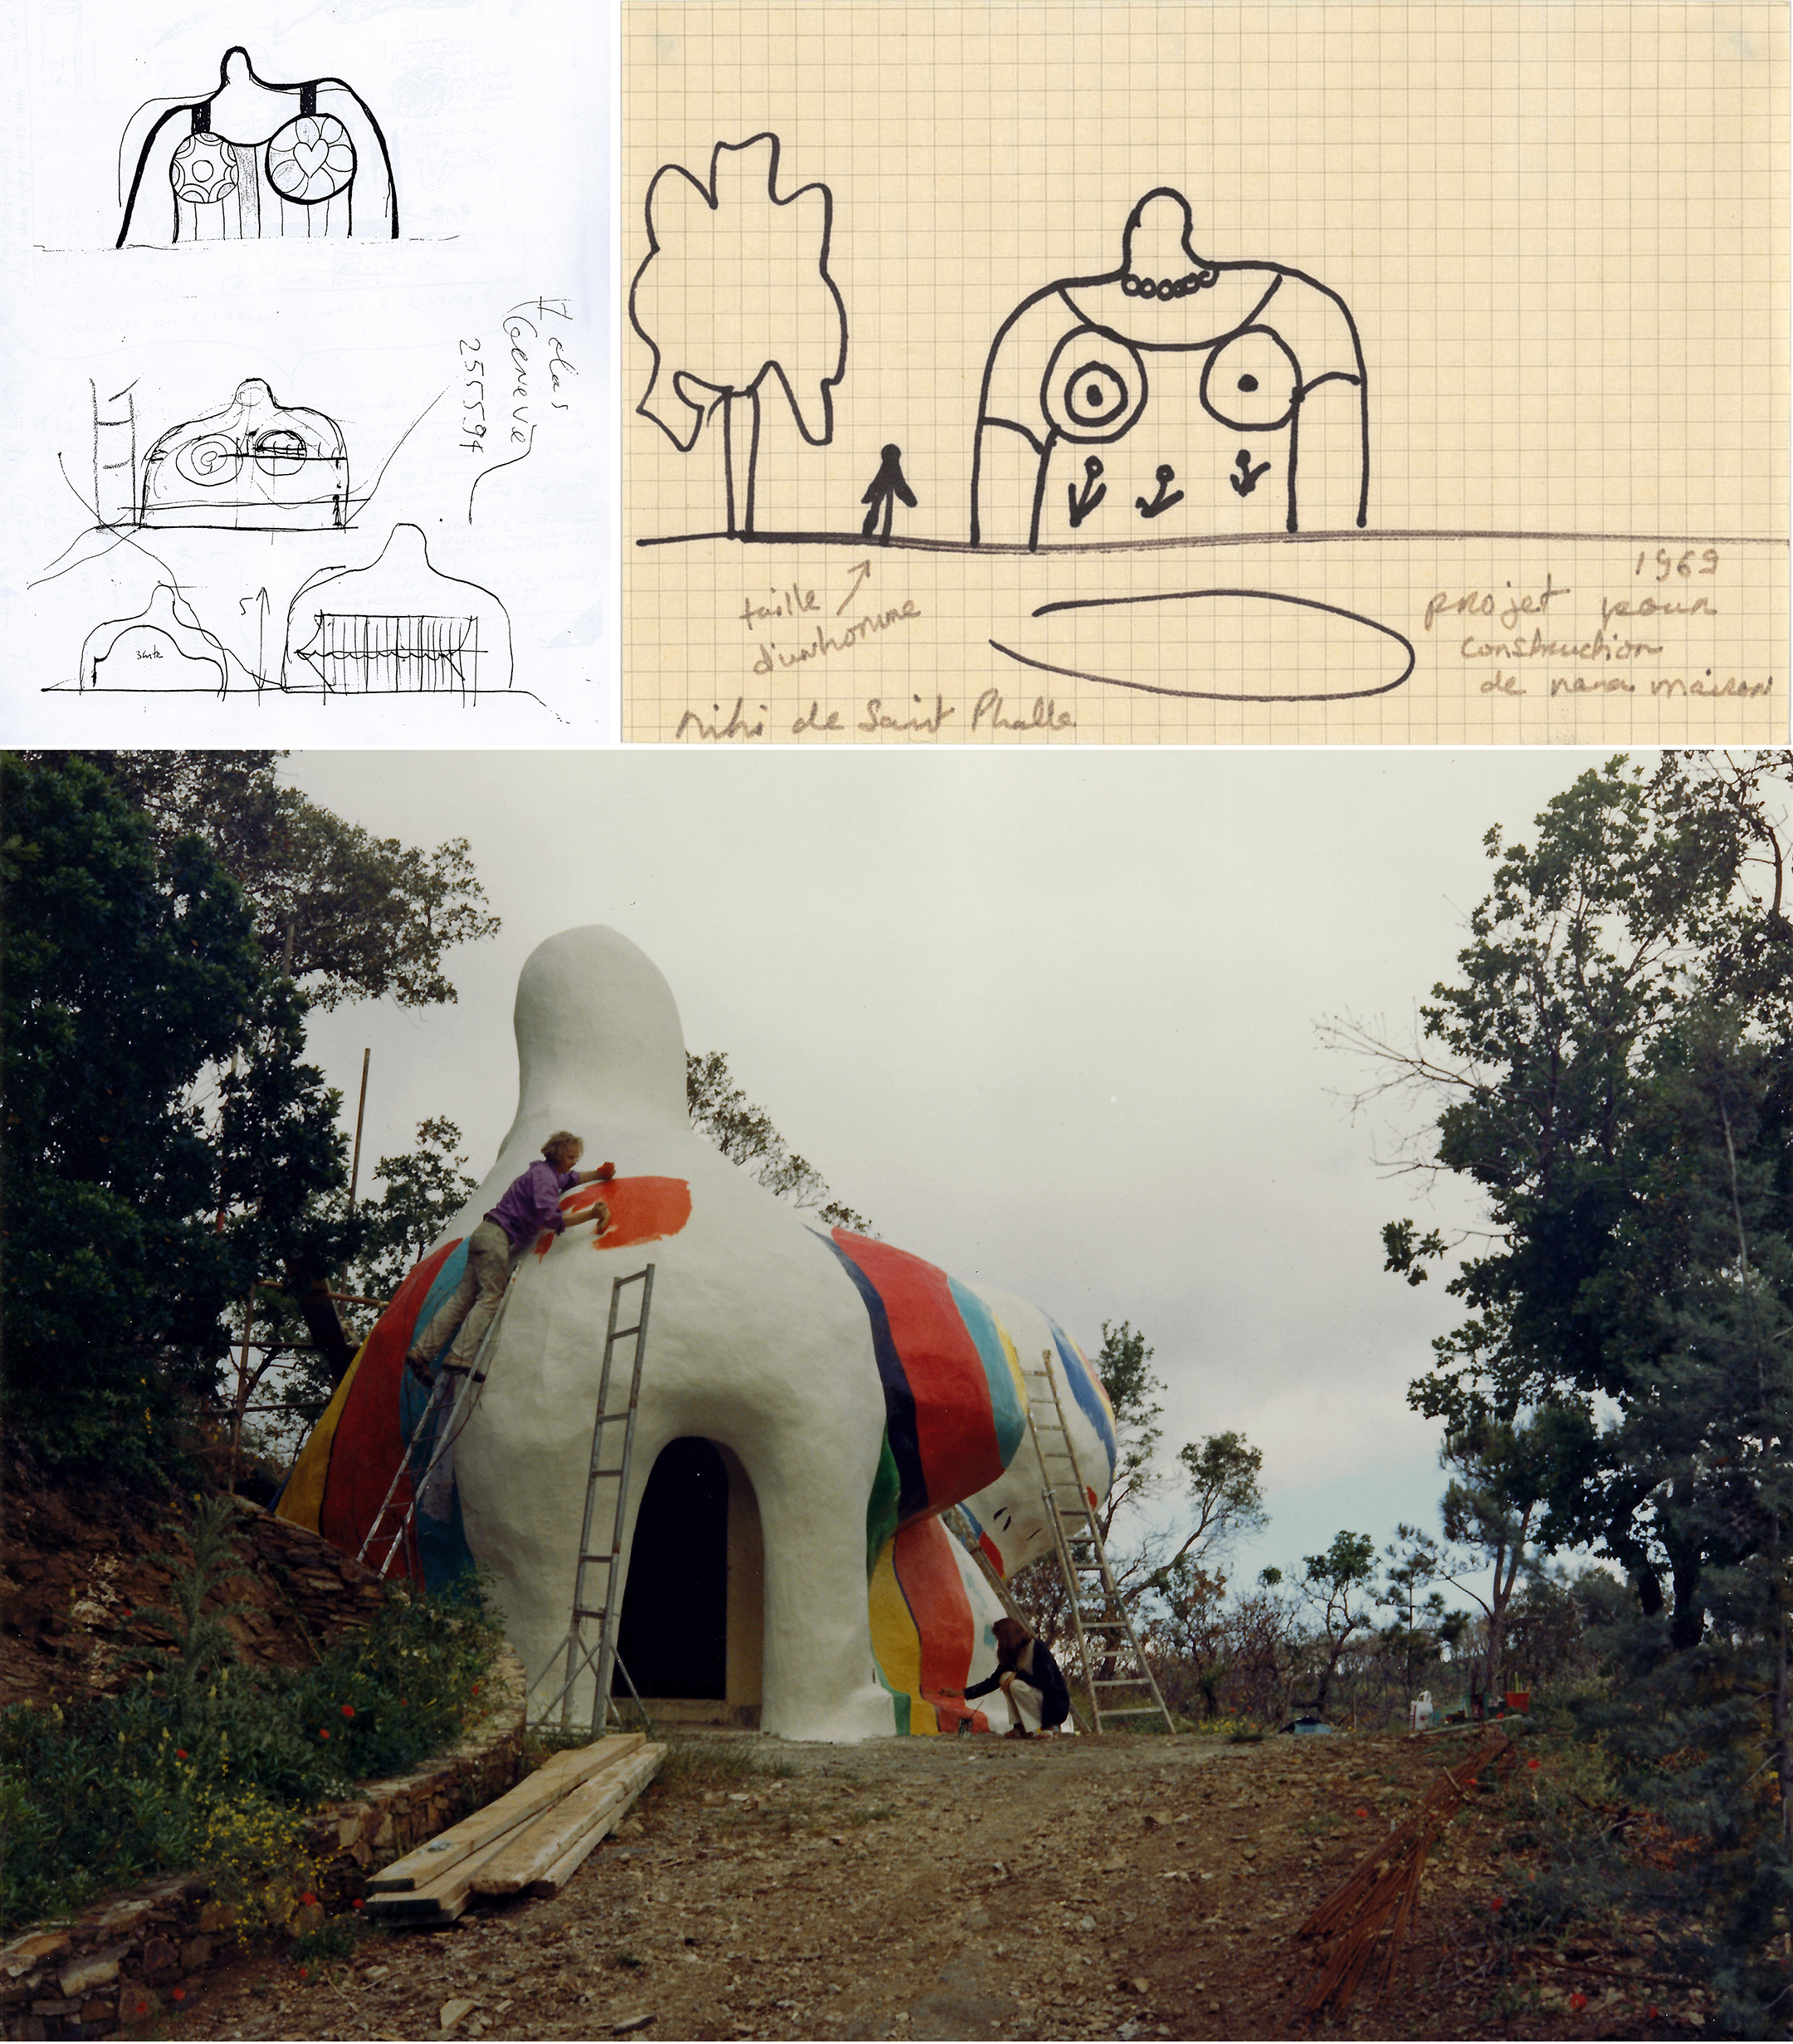 "A pencil drawing by Niki de Saint Phalle and Jean Tinguely of the outside of Big Clarice in frontal view, as well as primitive structural lines inside and with a canopy. Next a black marker drawing on grid paper showing Big Clarice next to a figure and a tree. The notes in Niki de Saint Phalle's handwriting say: ""taille d'un home"" and ""1969 project pour construction de nano maison"" Bottom pictures shows Rainer von Hessen on a ladder painting orange patches on Big Clarice. Niki de Saint Phalle paints the front kneeling down."